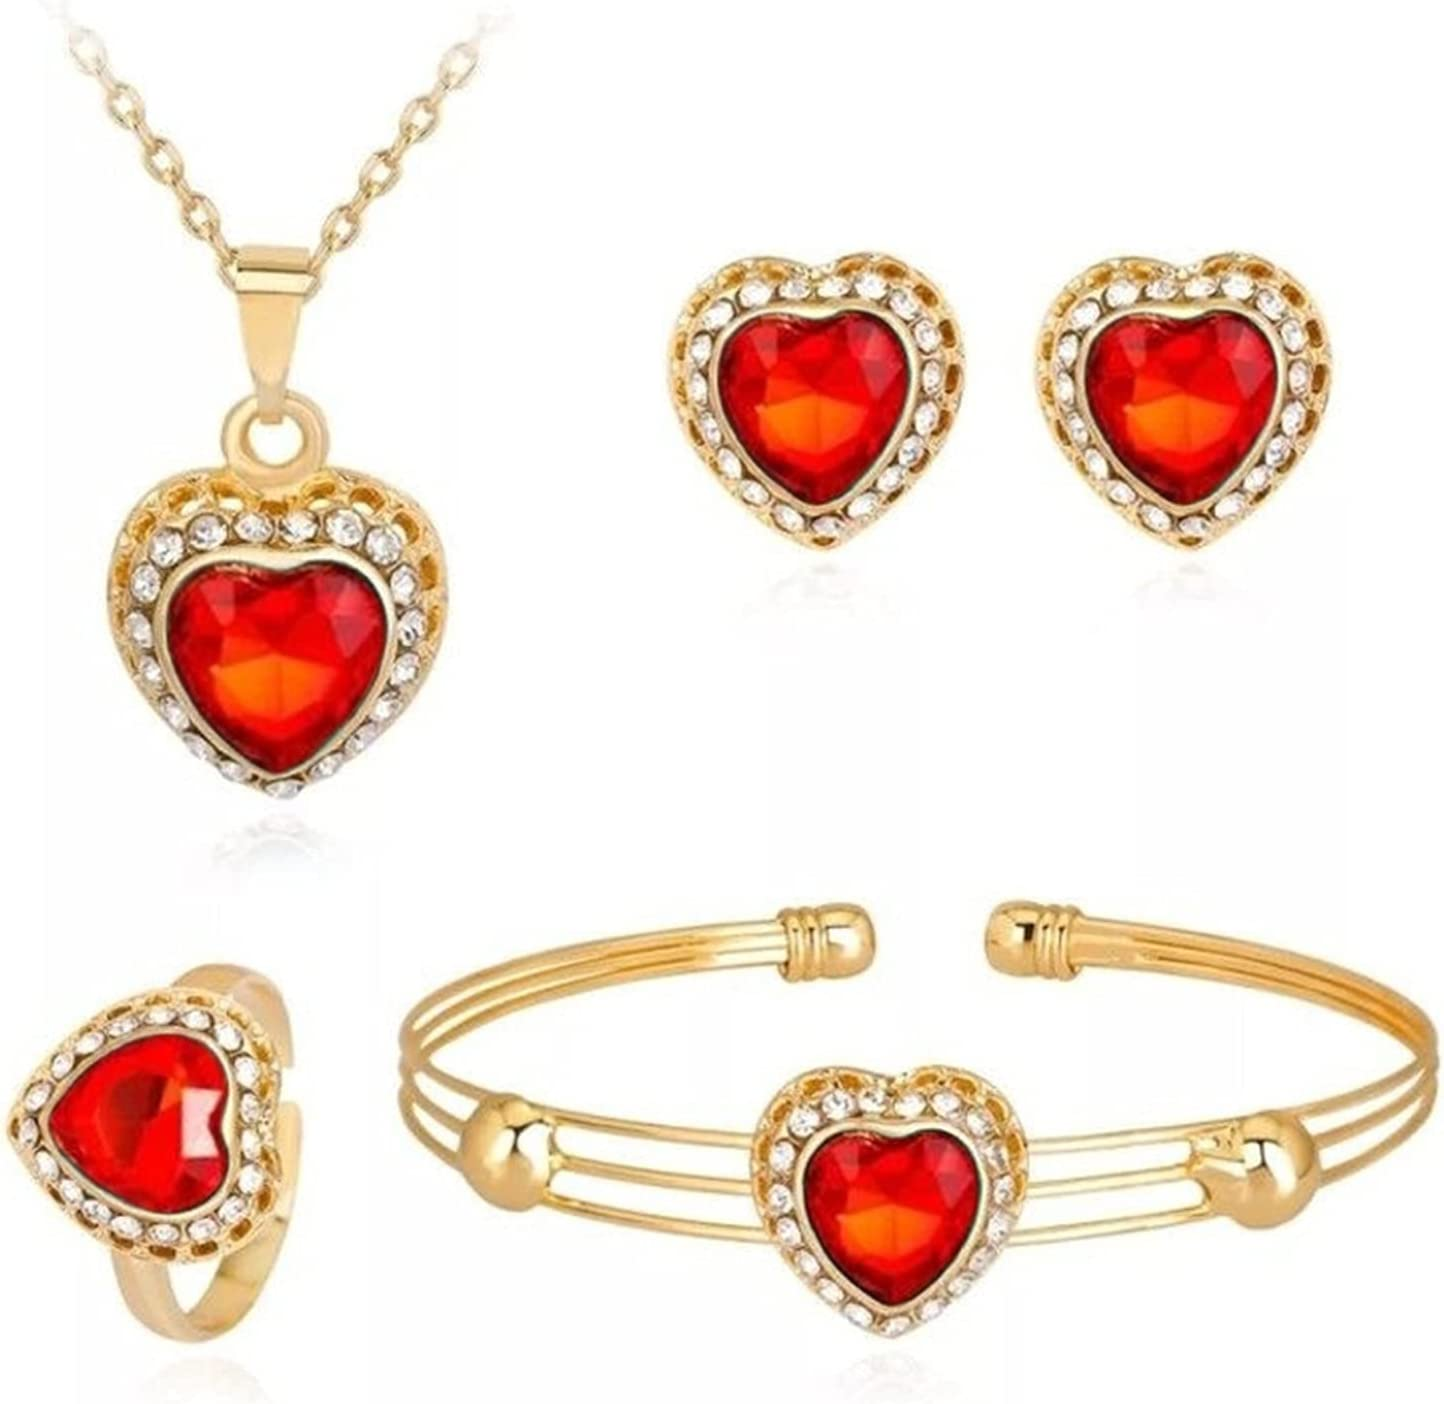 Jewelry Sets Fashion Love Heart Women Crystal Pendant Costume Wedding Sets Gold Chain Necklace Bangle Earrings Ring (Color : F1443 red)